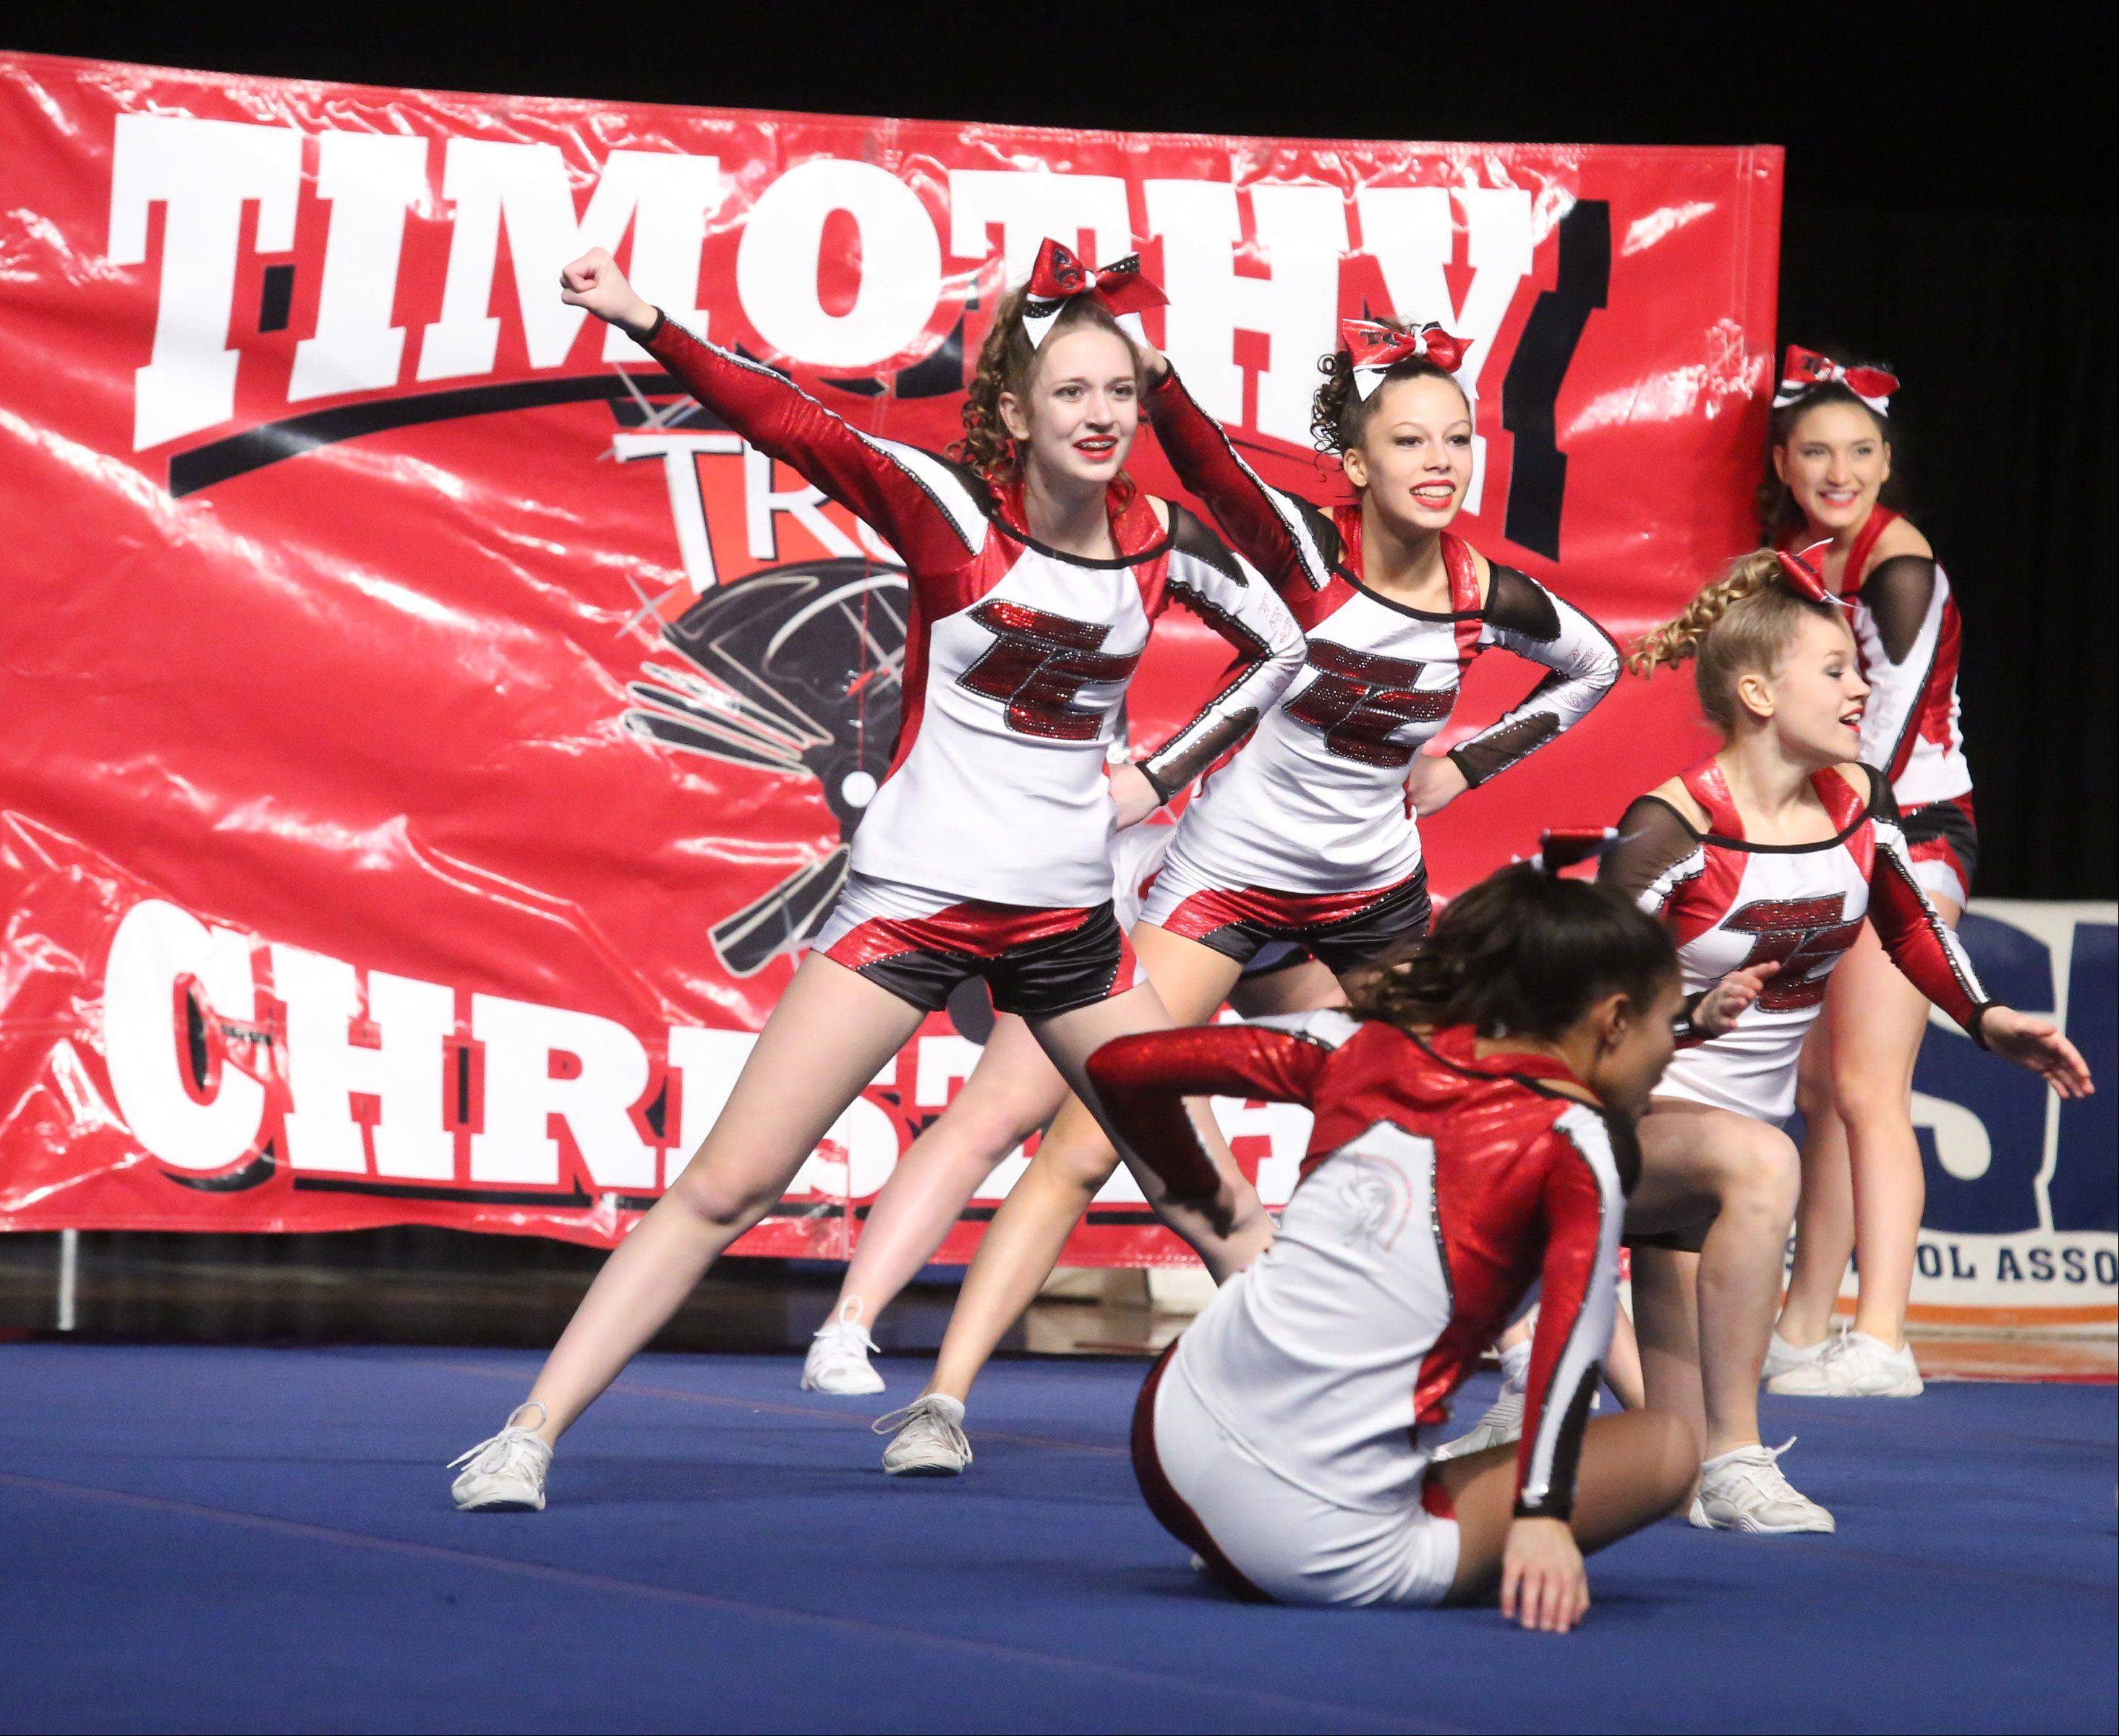 Timothy Christian High School's cheer team performs in the small team category.